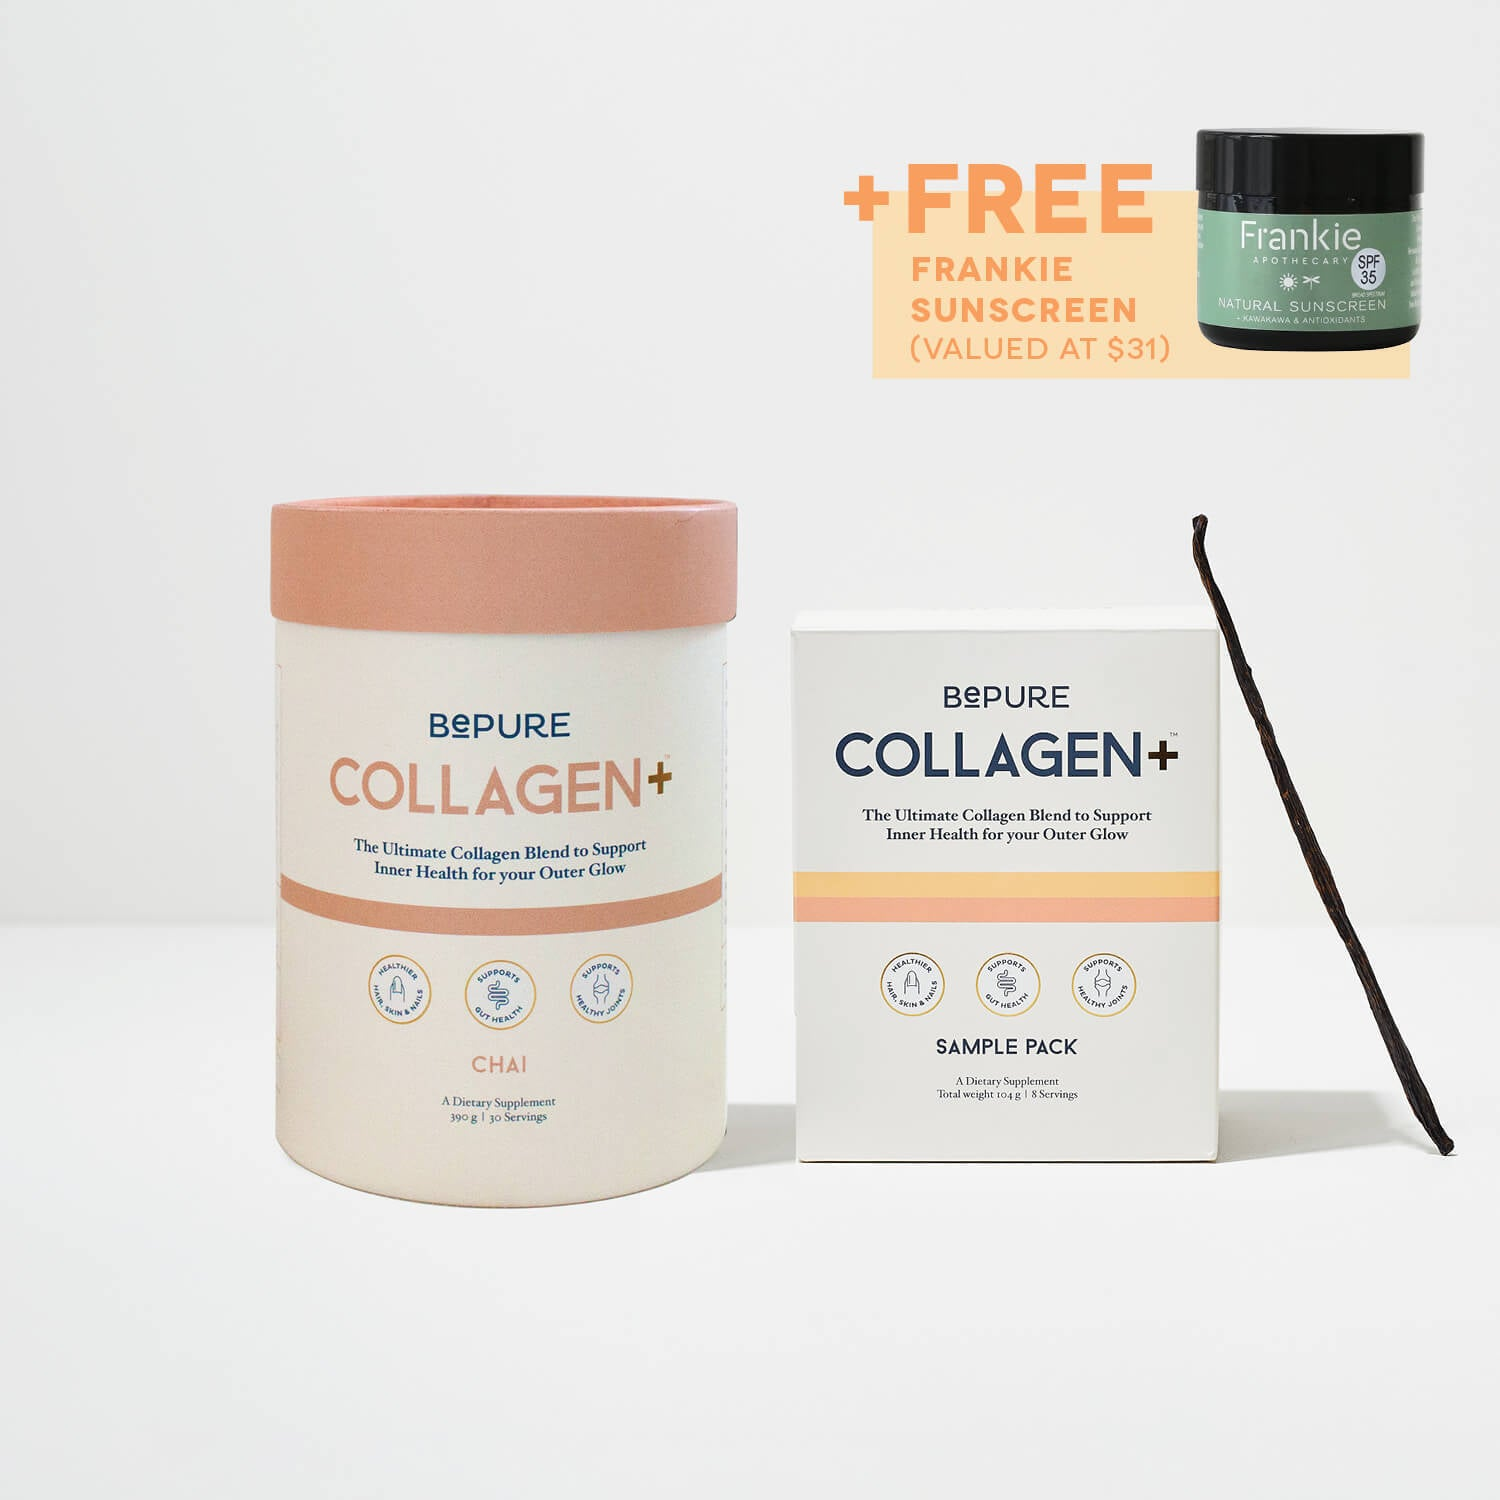 Limited Edition Summer Collagen+ Pack